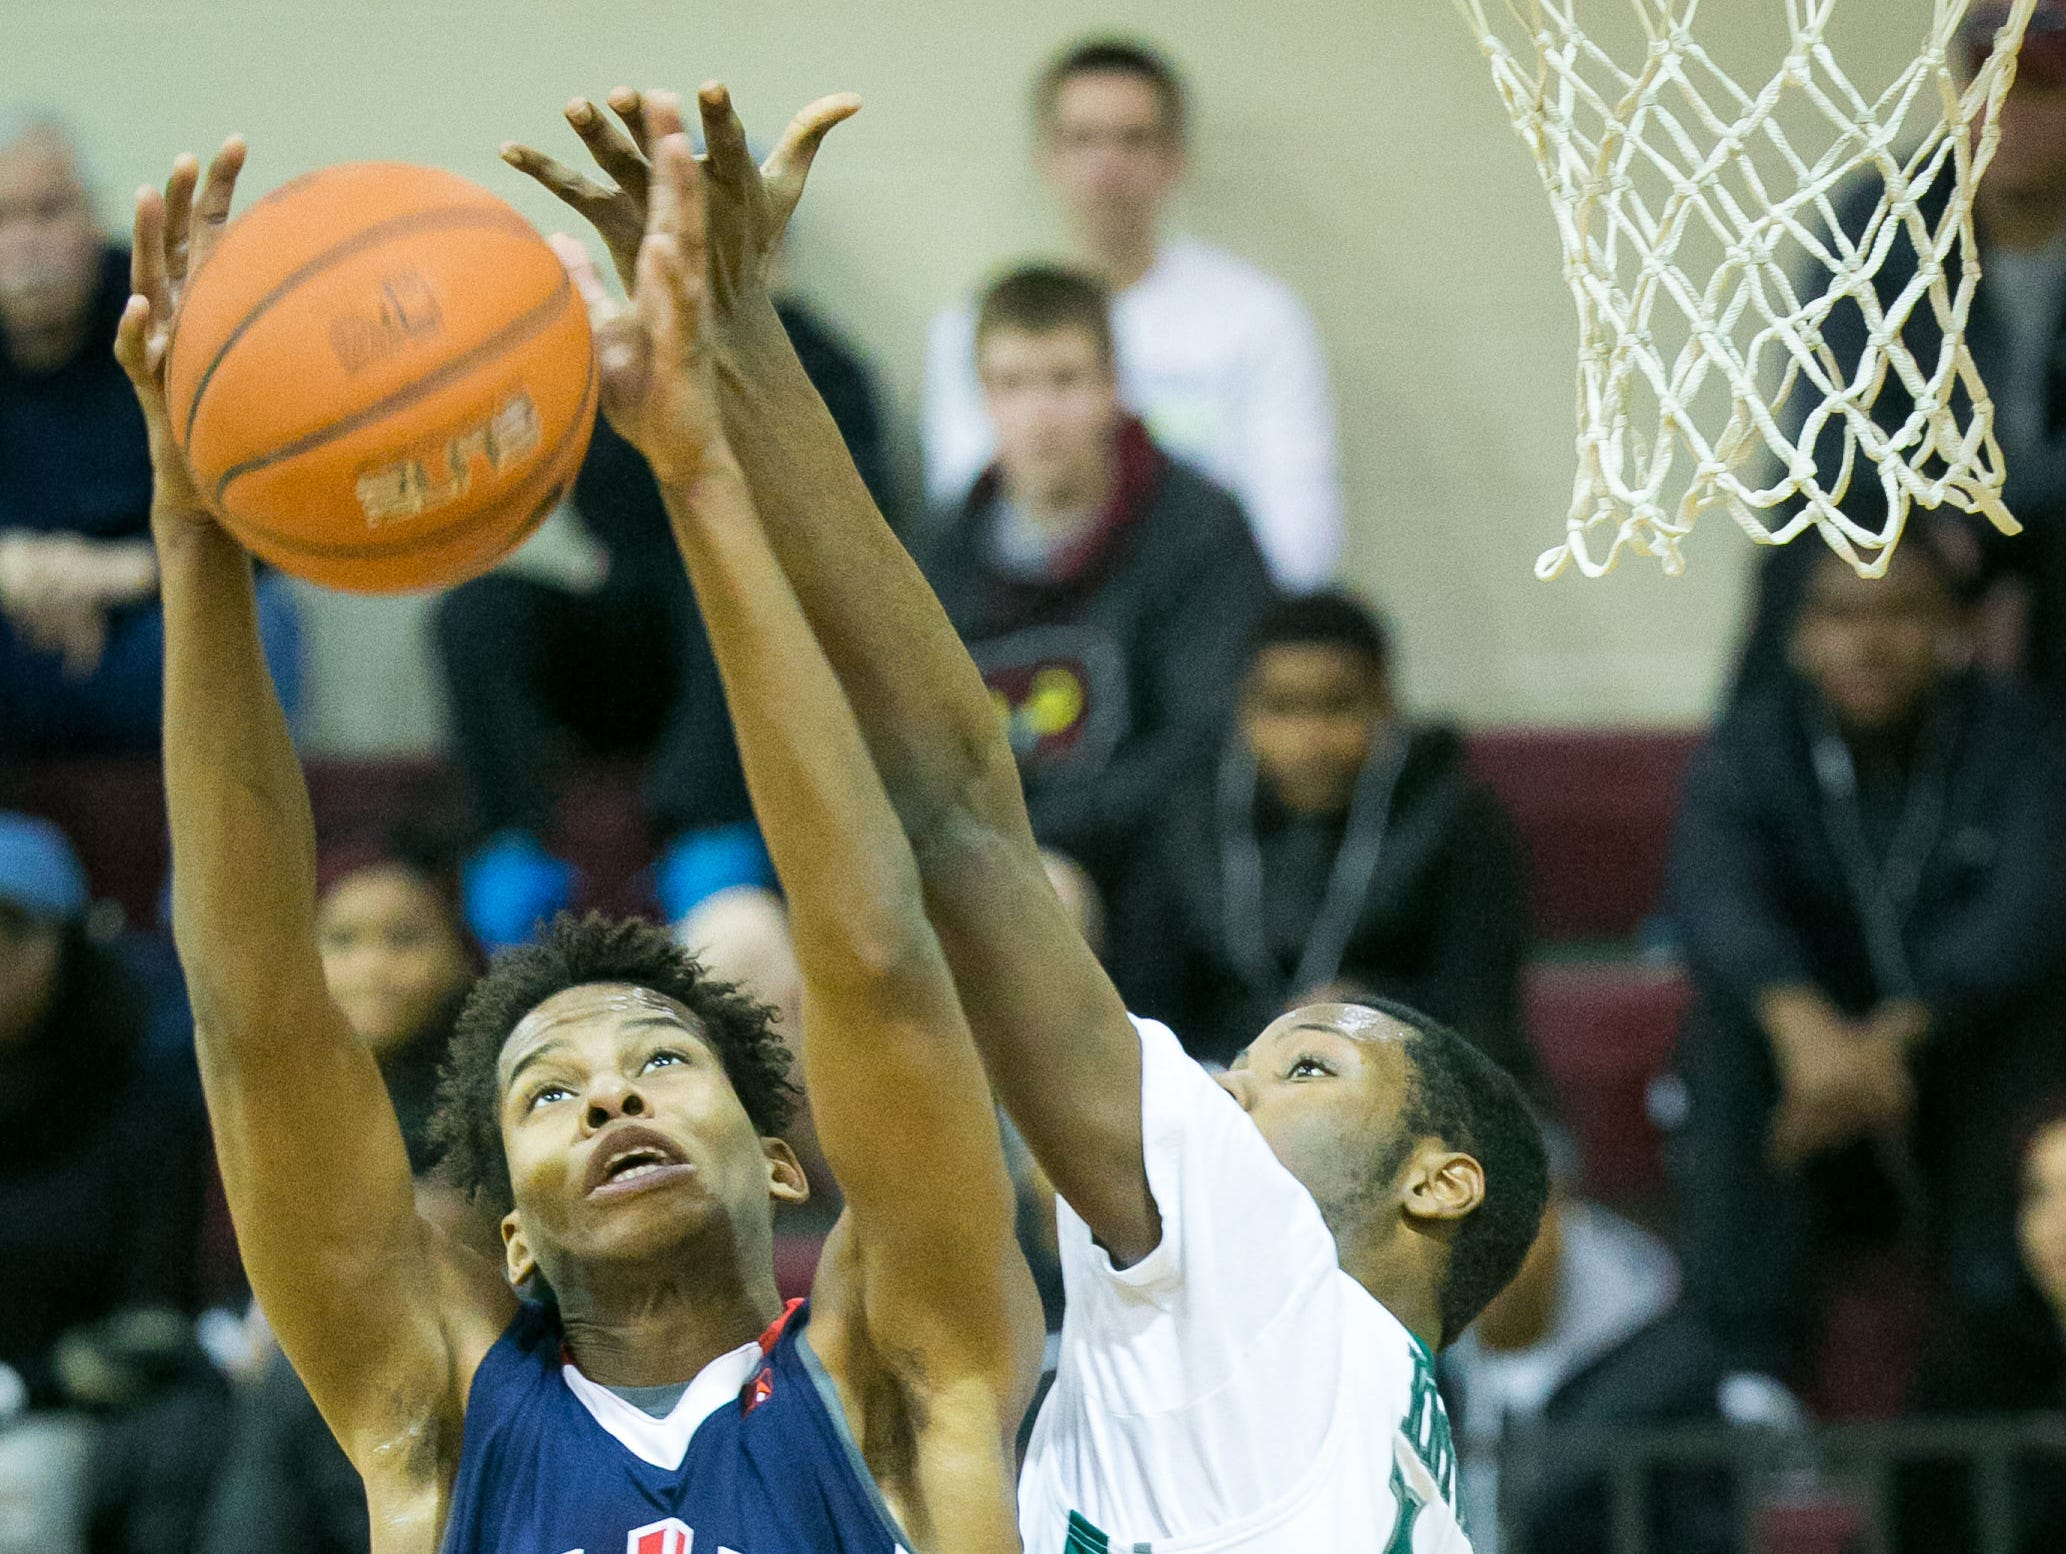 DeJon Backus of Mount Pleasant blocks Yvens Monfluery of American History at the 5th Annual Concord Classic.